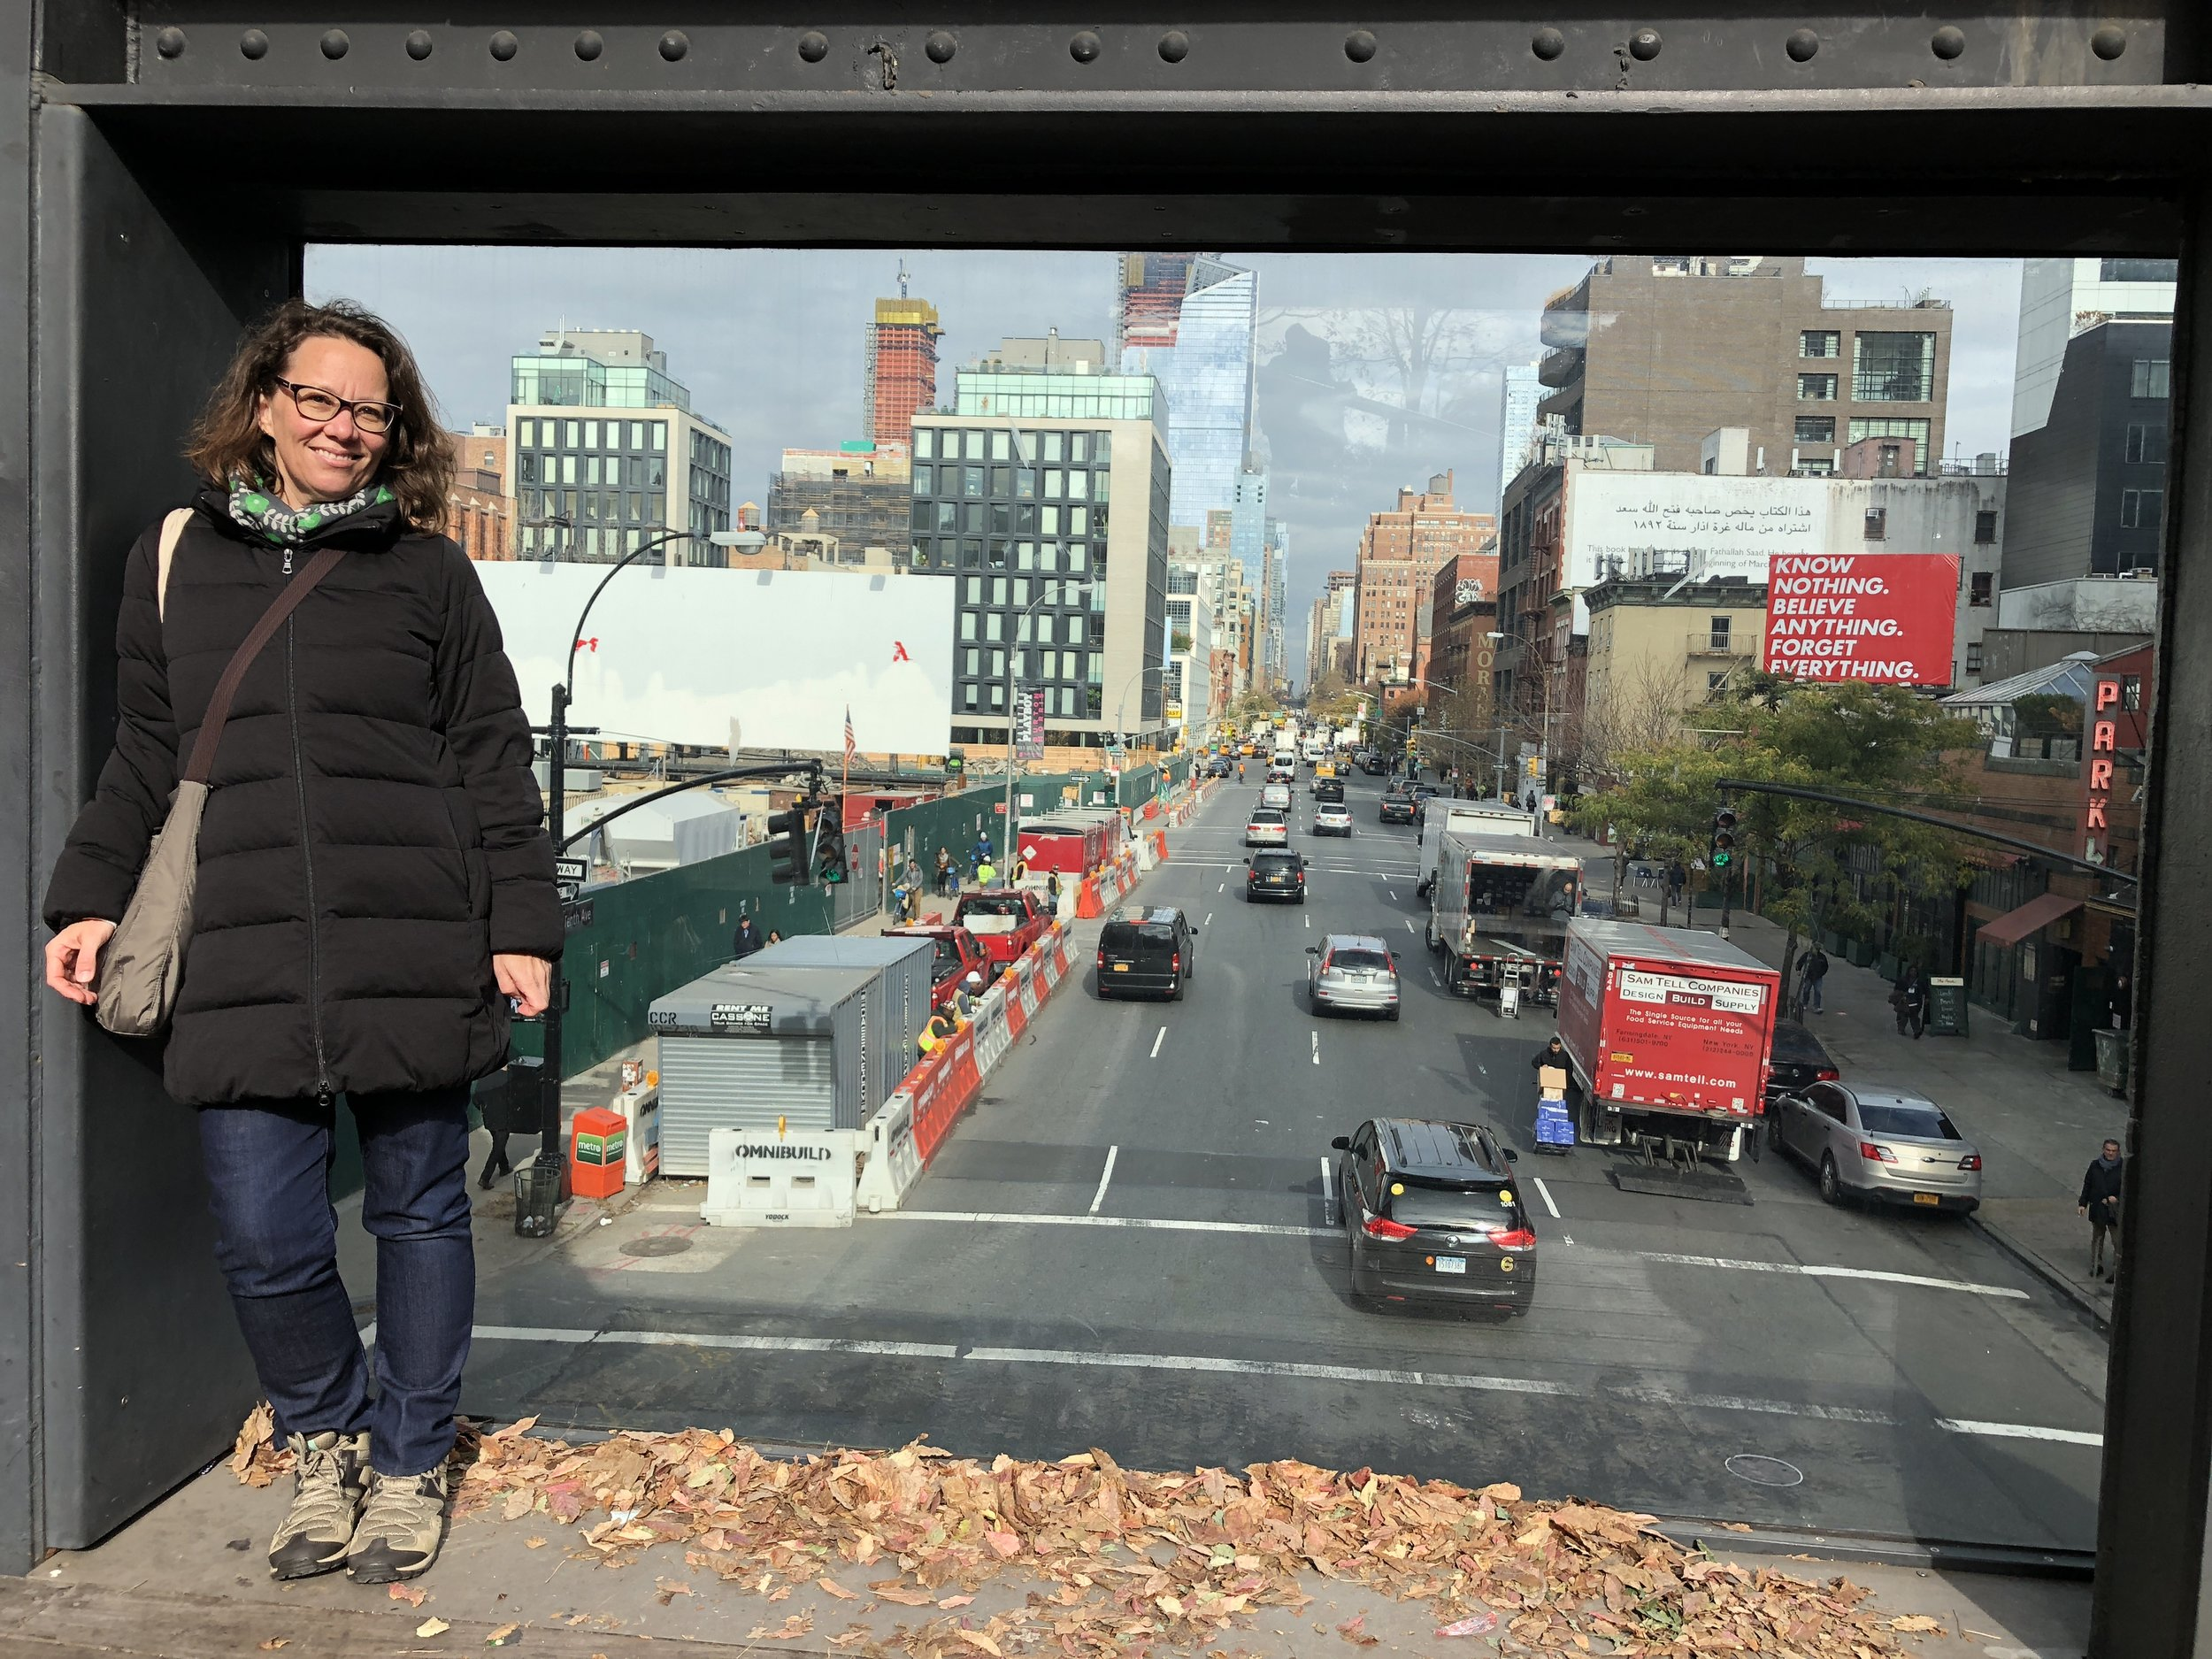 Rachael Bernstone at the 10th Street overpass, The High Line, New York City